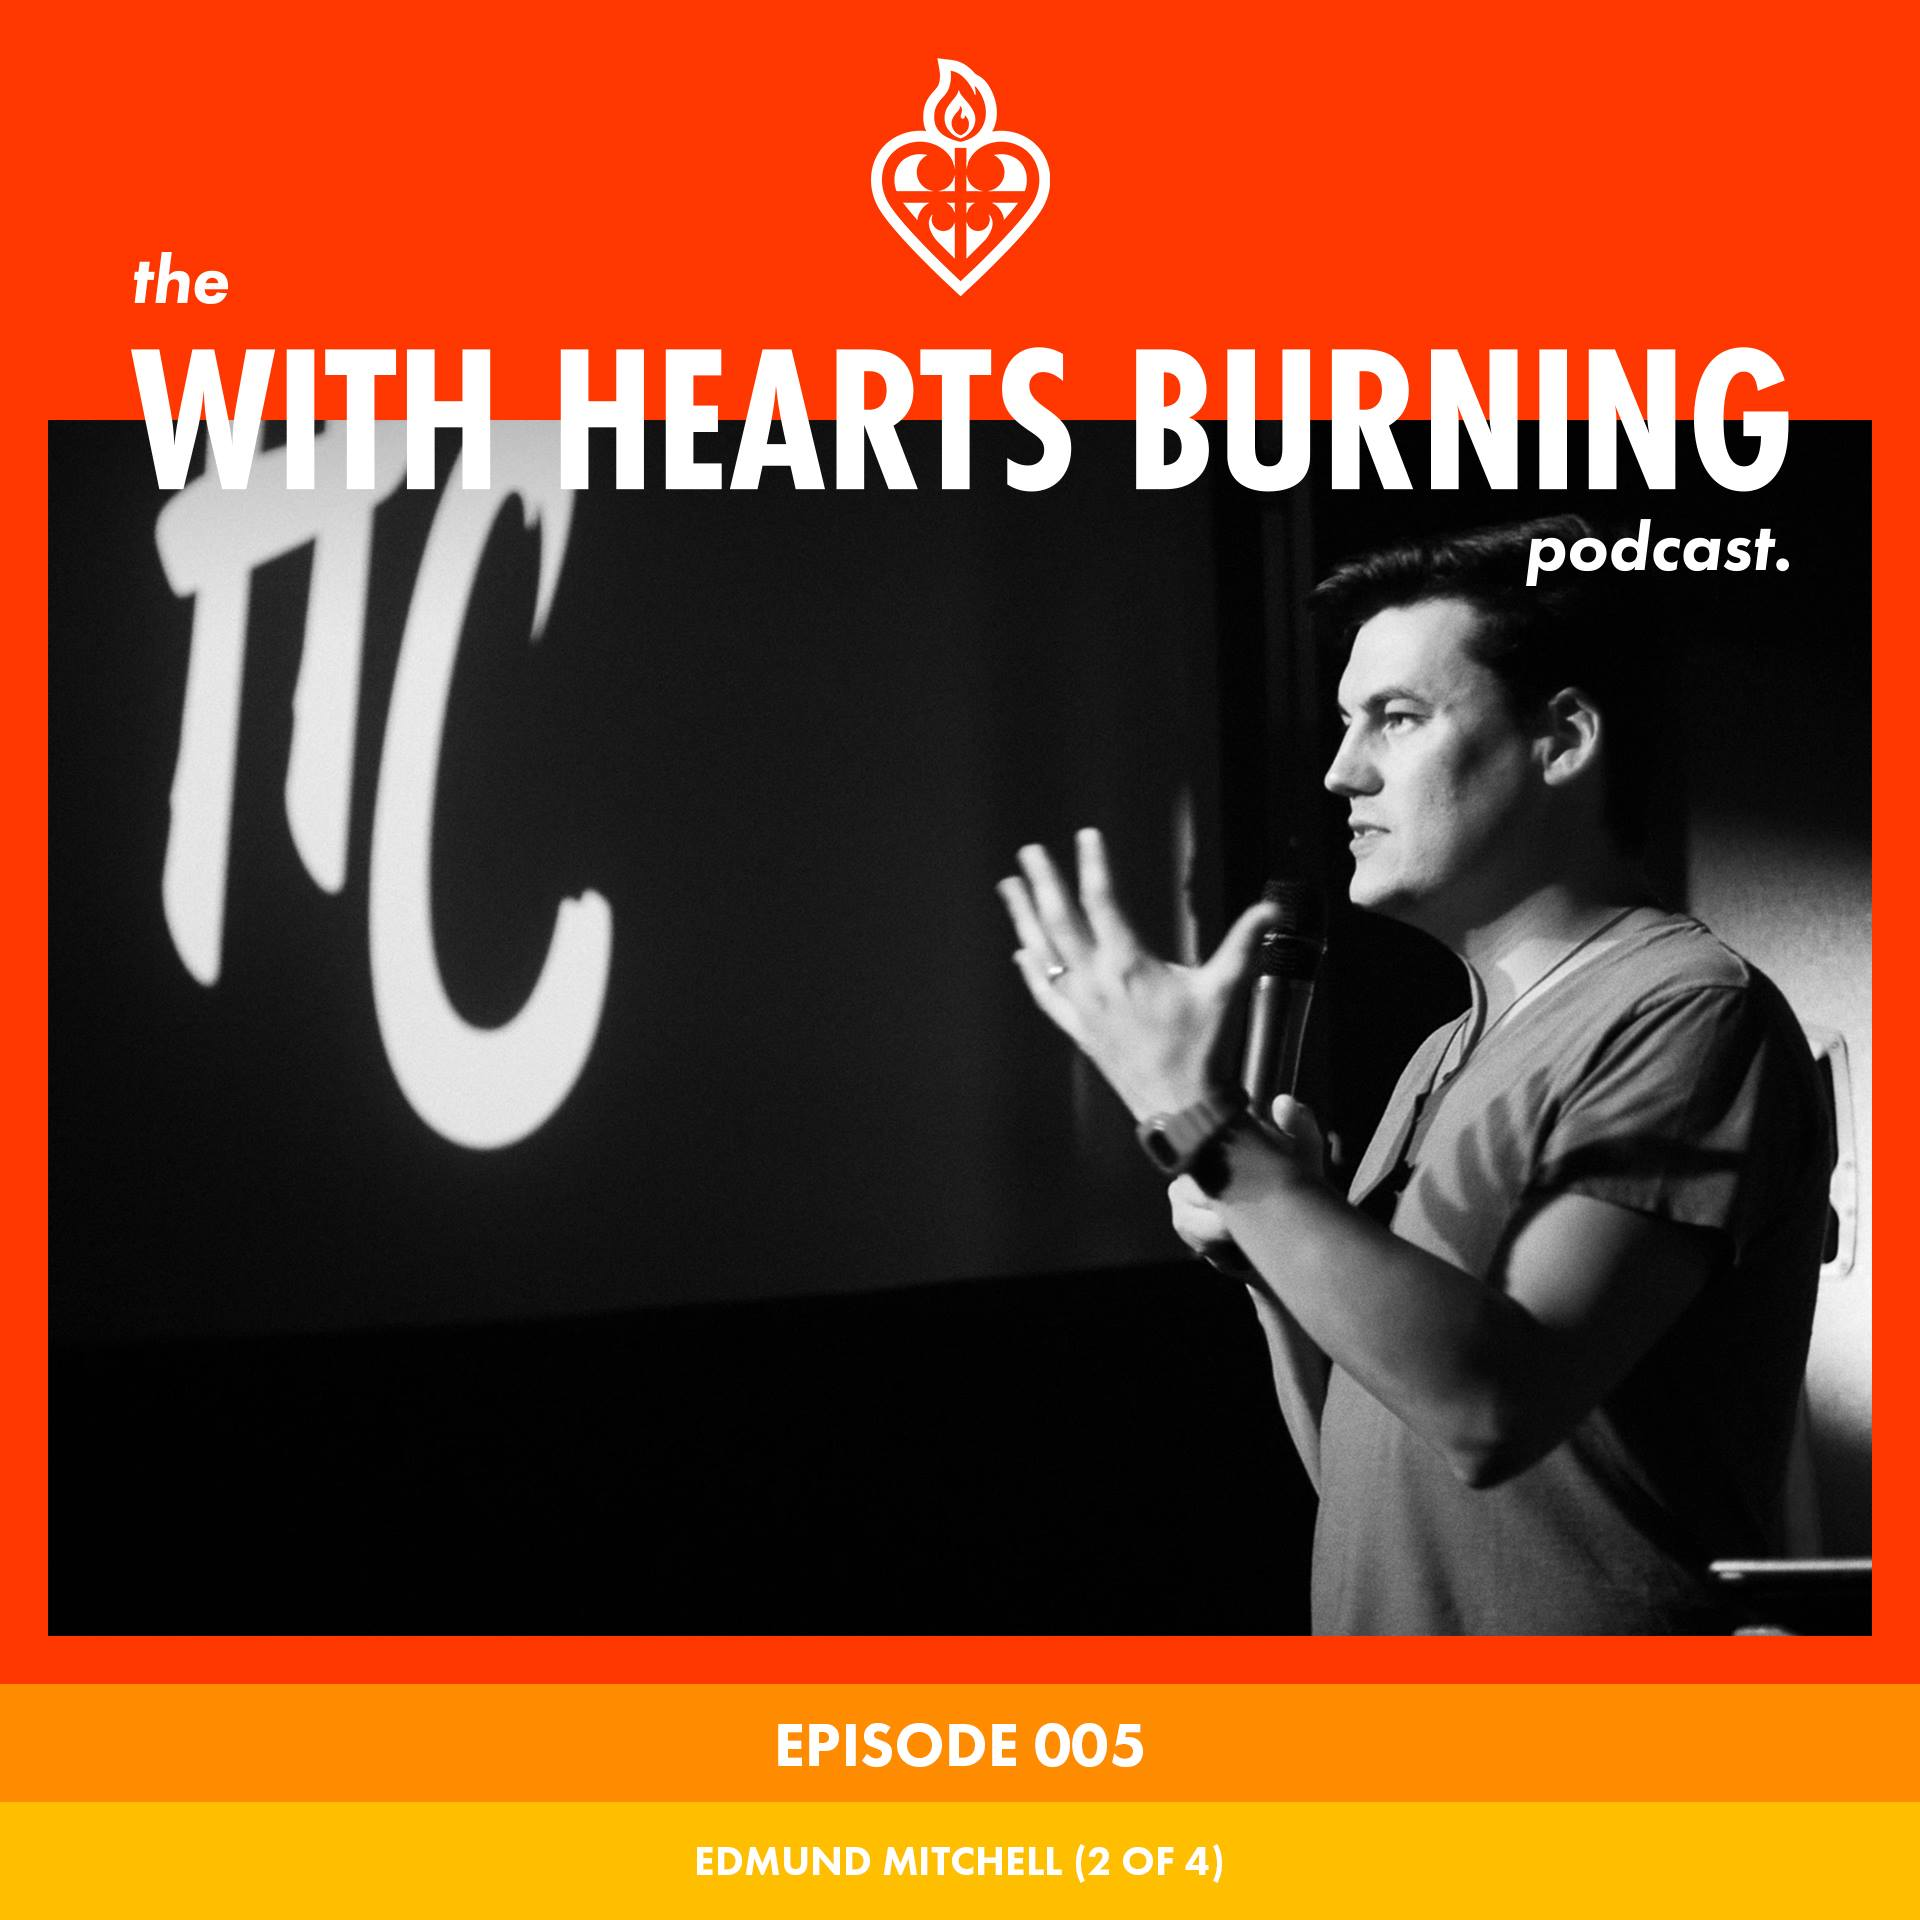 LISTEN TO ALL THE HEAVEN COME KEYNOTES ON THE WITH HEARTS BURNING PODCAST